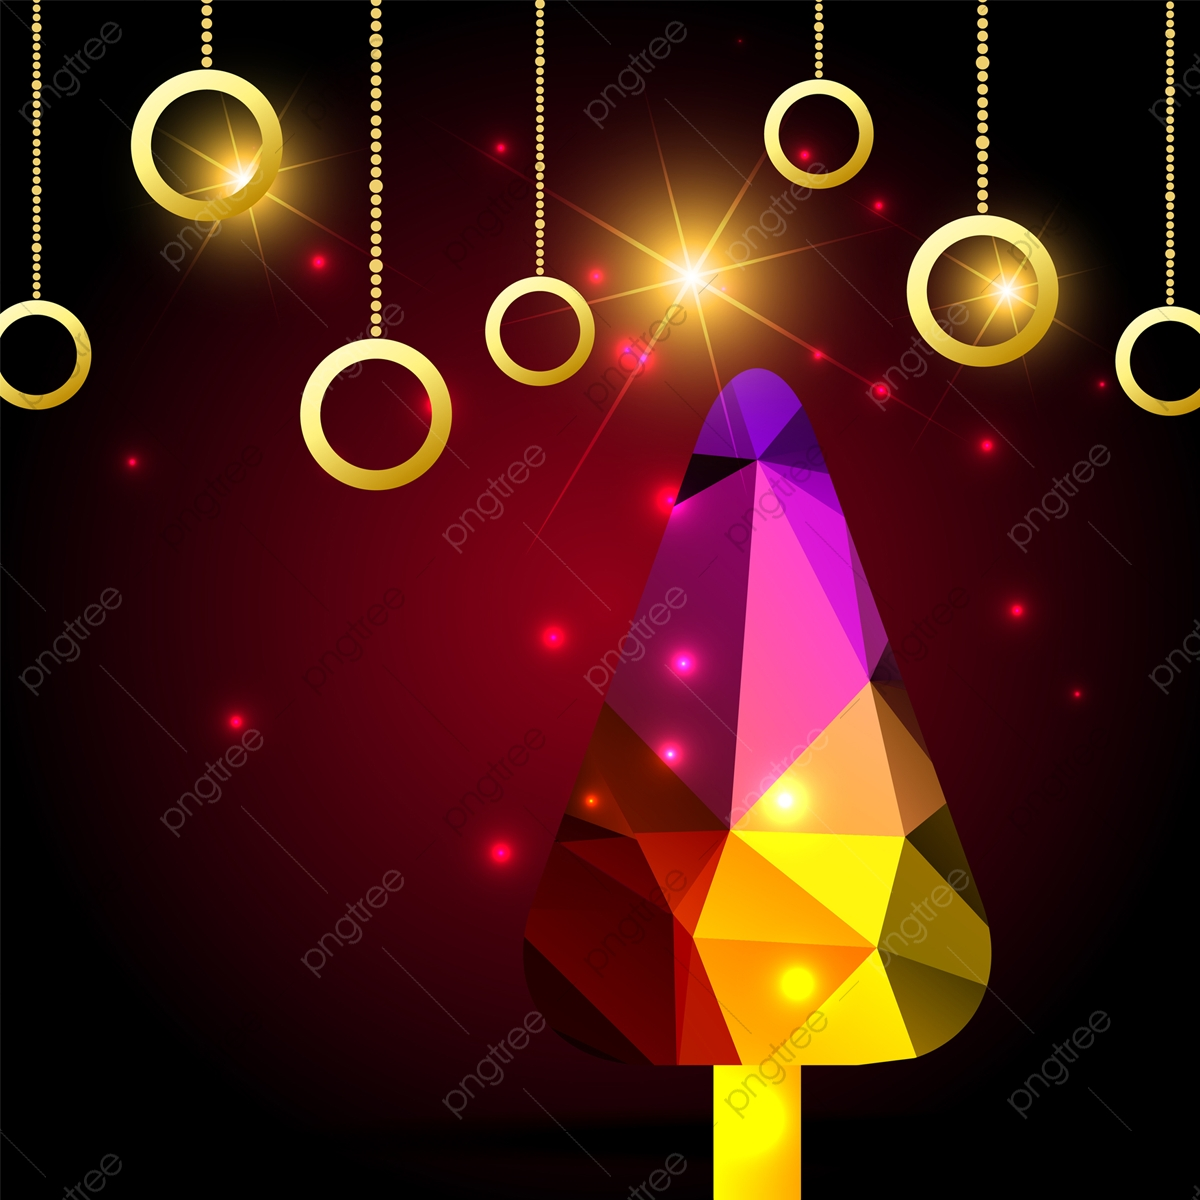 Colorful Christmas Background Design.Colorful Christmas Tree Background Design Christmas